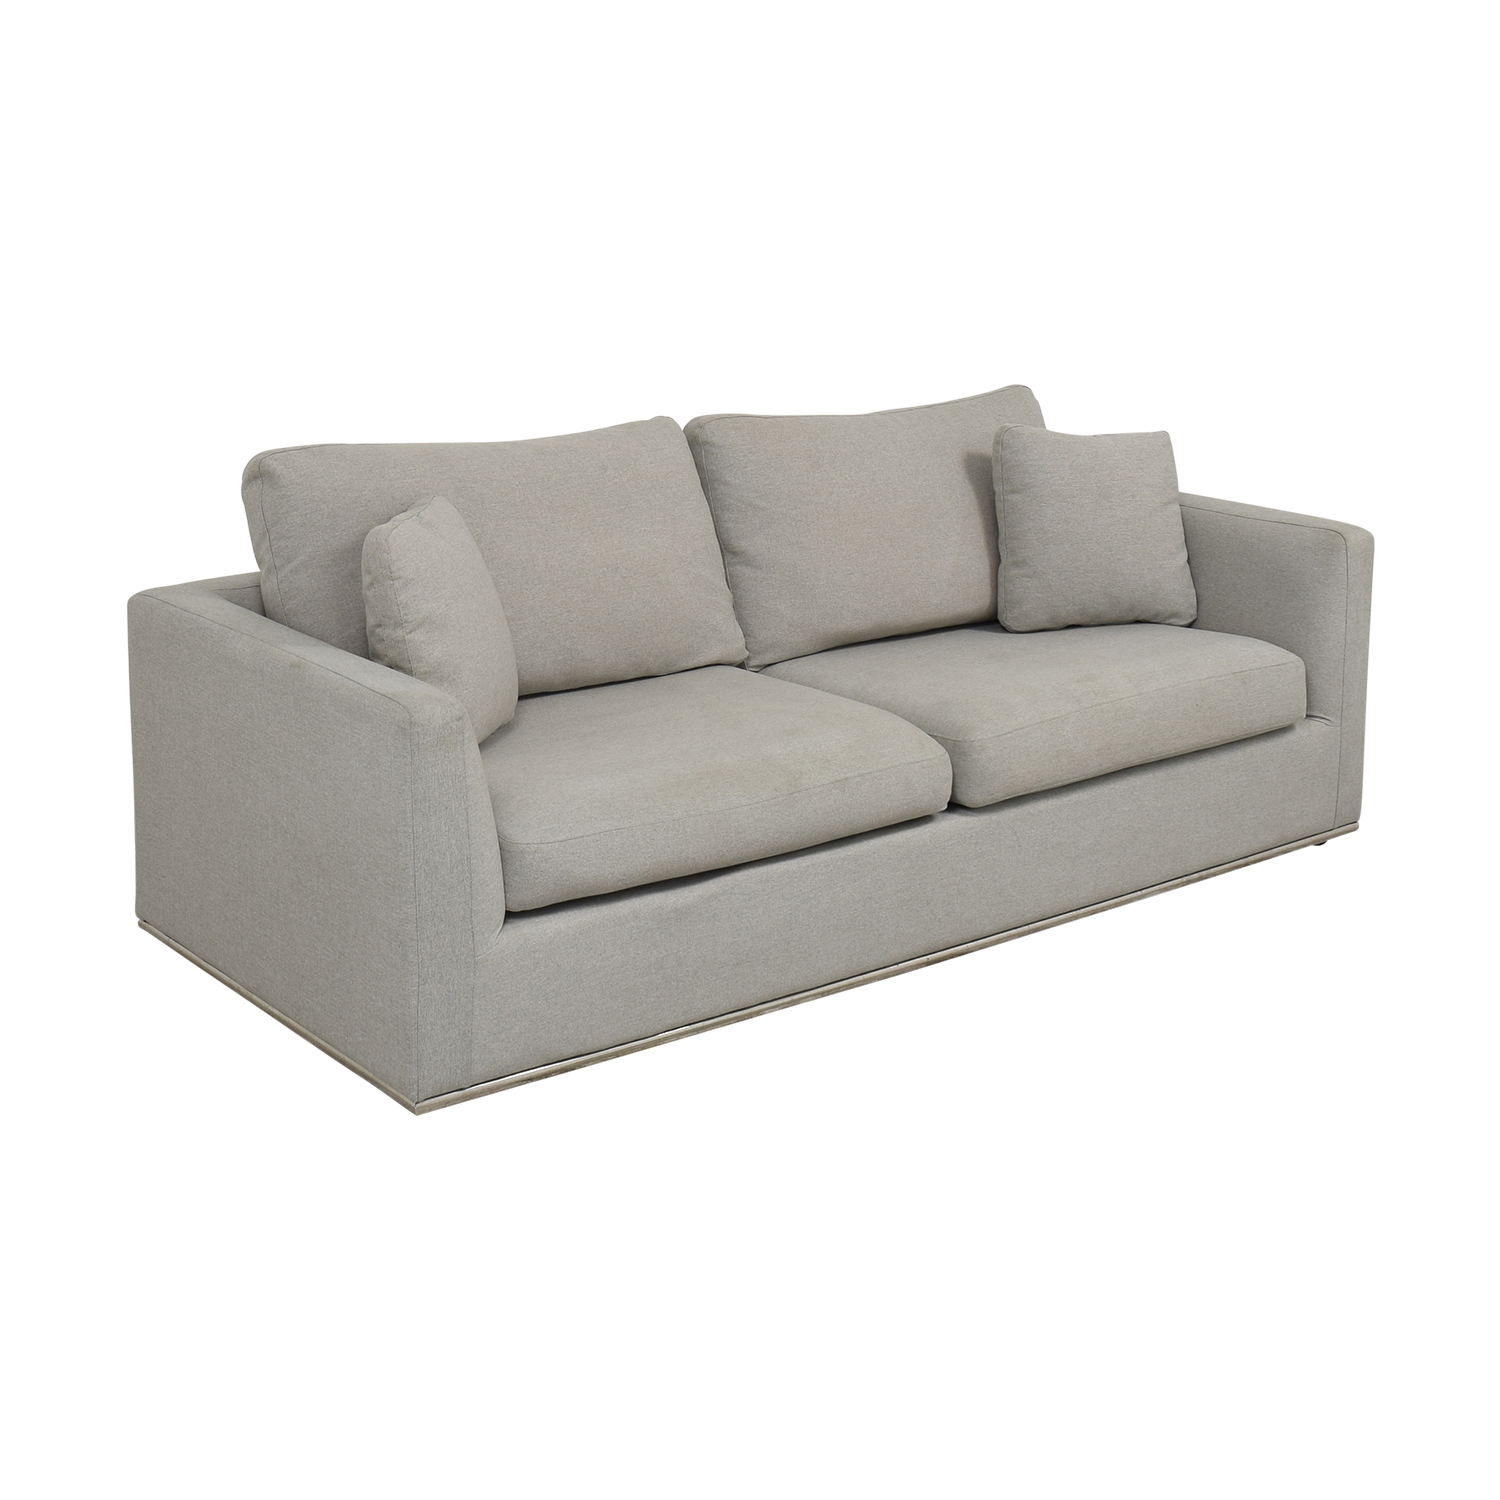 buy Modani Modani Modern Two Seater Sofa online